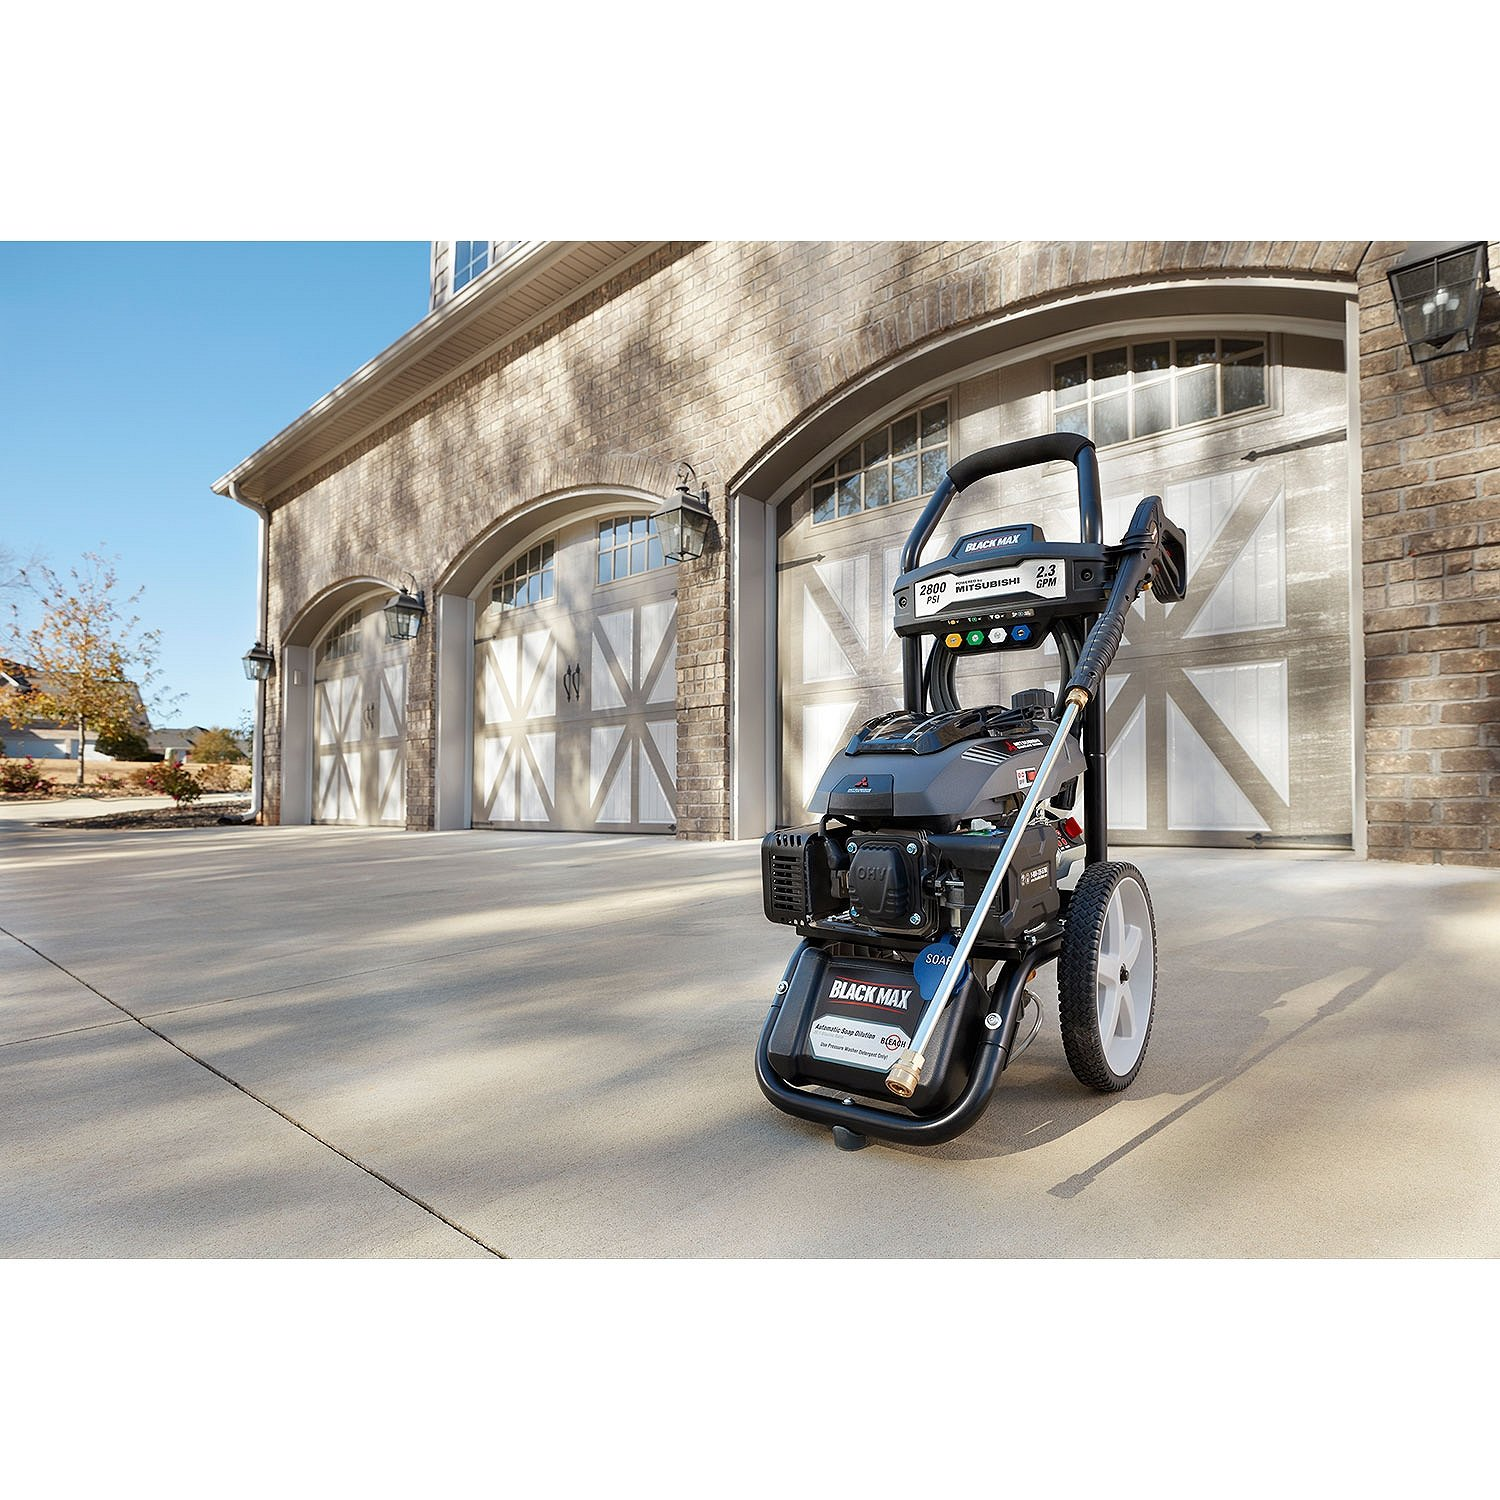 Amazon.com : Black Max 2800 PSI / 2.3 GPM Gas Pressure Washer (Powered by  Mitsubishi 173cc) : Garden & Outdoor